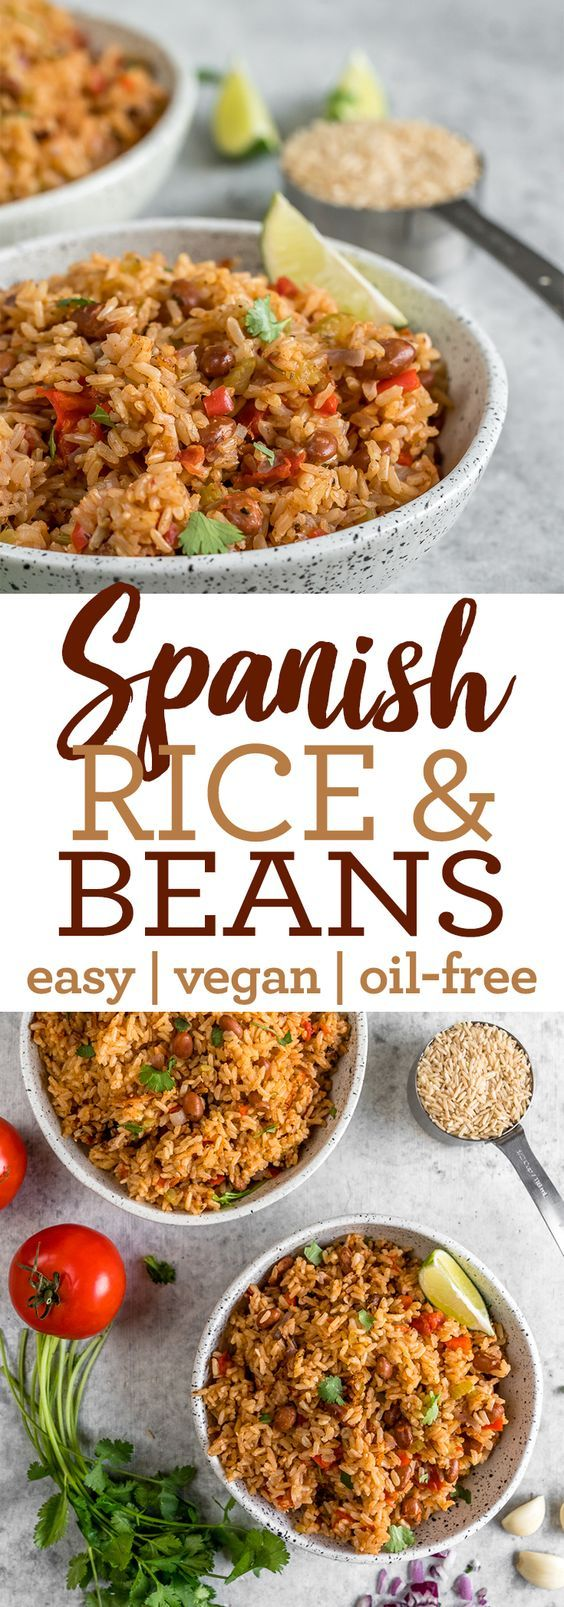 Vegan Spanish Rice and Beans (healthy & oil-free) #ricecookermeals